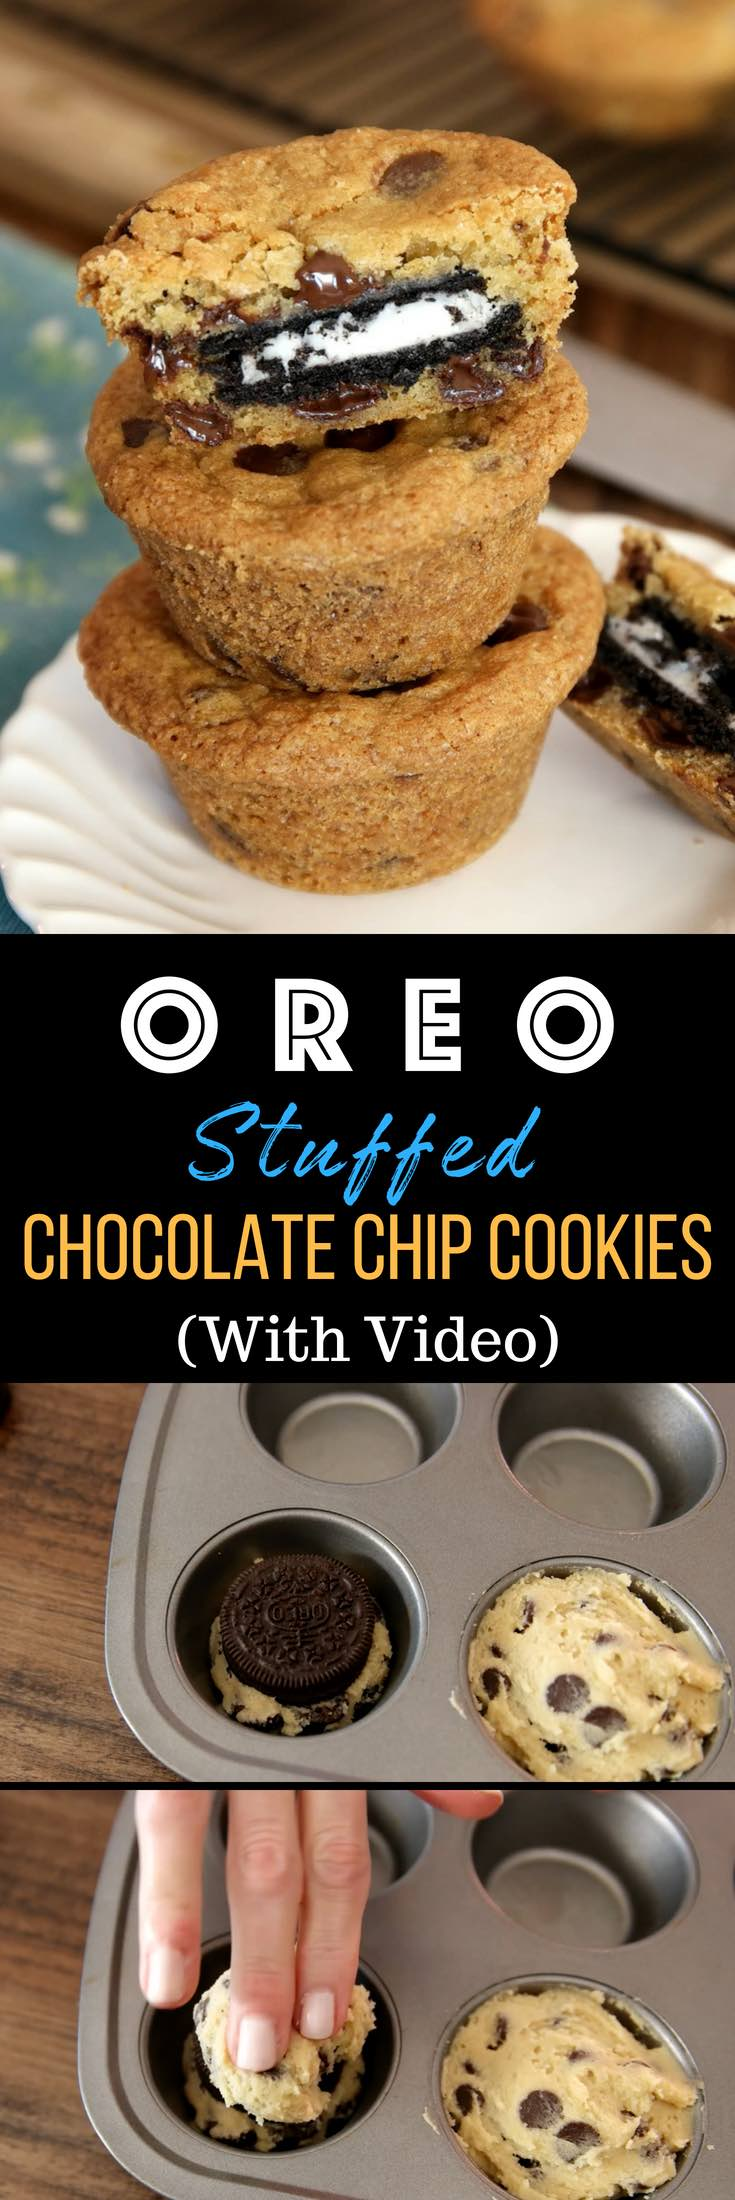 Oreo Chocolate Chip Cookies – The BEST soft and chewy chocolate chip cookies stuffed with moist Oreos! They take less than 30 minutes to make and all you need is your favorite chocolate chip cookie dough and Oreos! So simple and so delicious! It's great for snack, parties, or dessert! Video recipe. | izzycooking.com #OreoStuffedChocolateChipCookies #OreoChocolateChipCookies